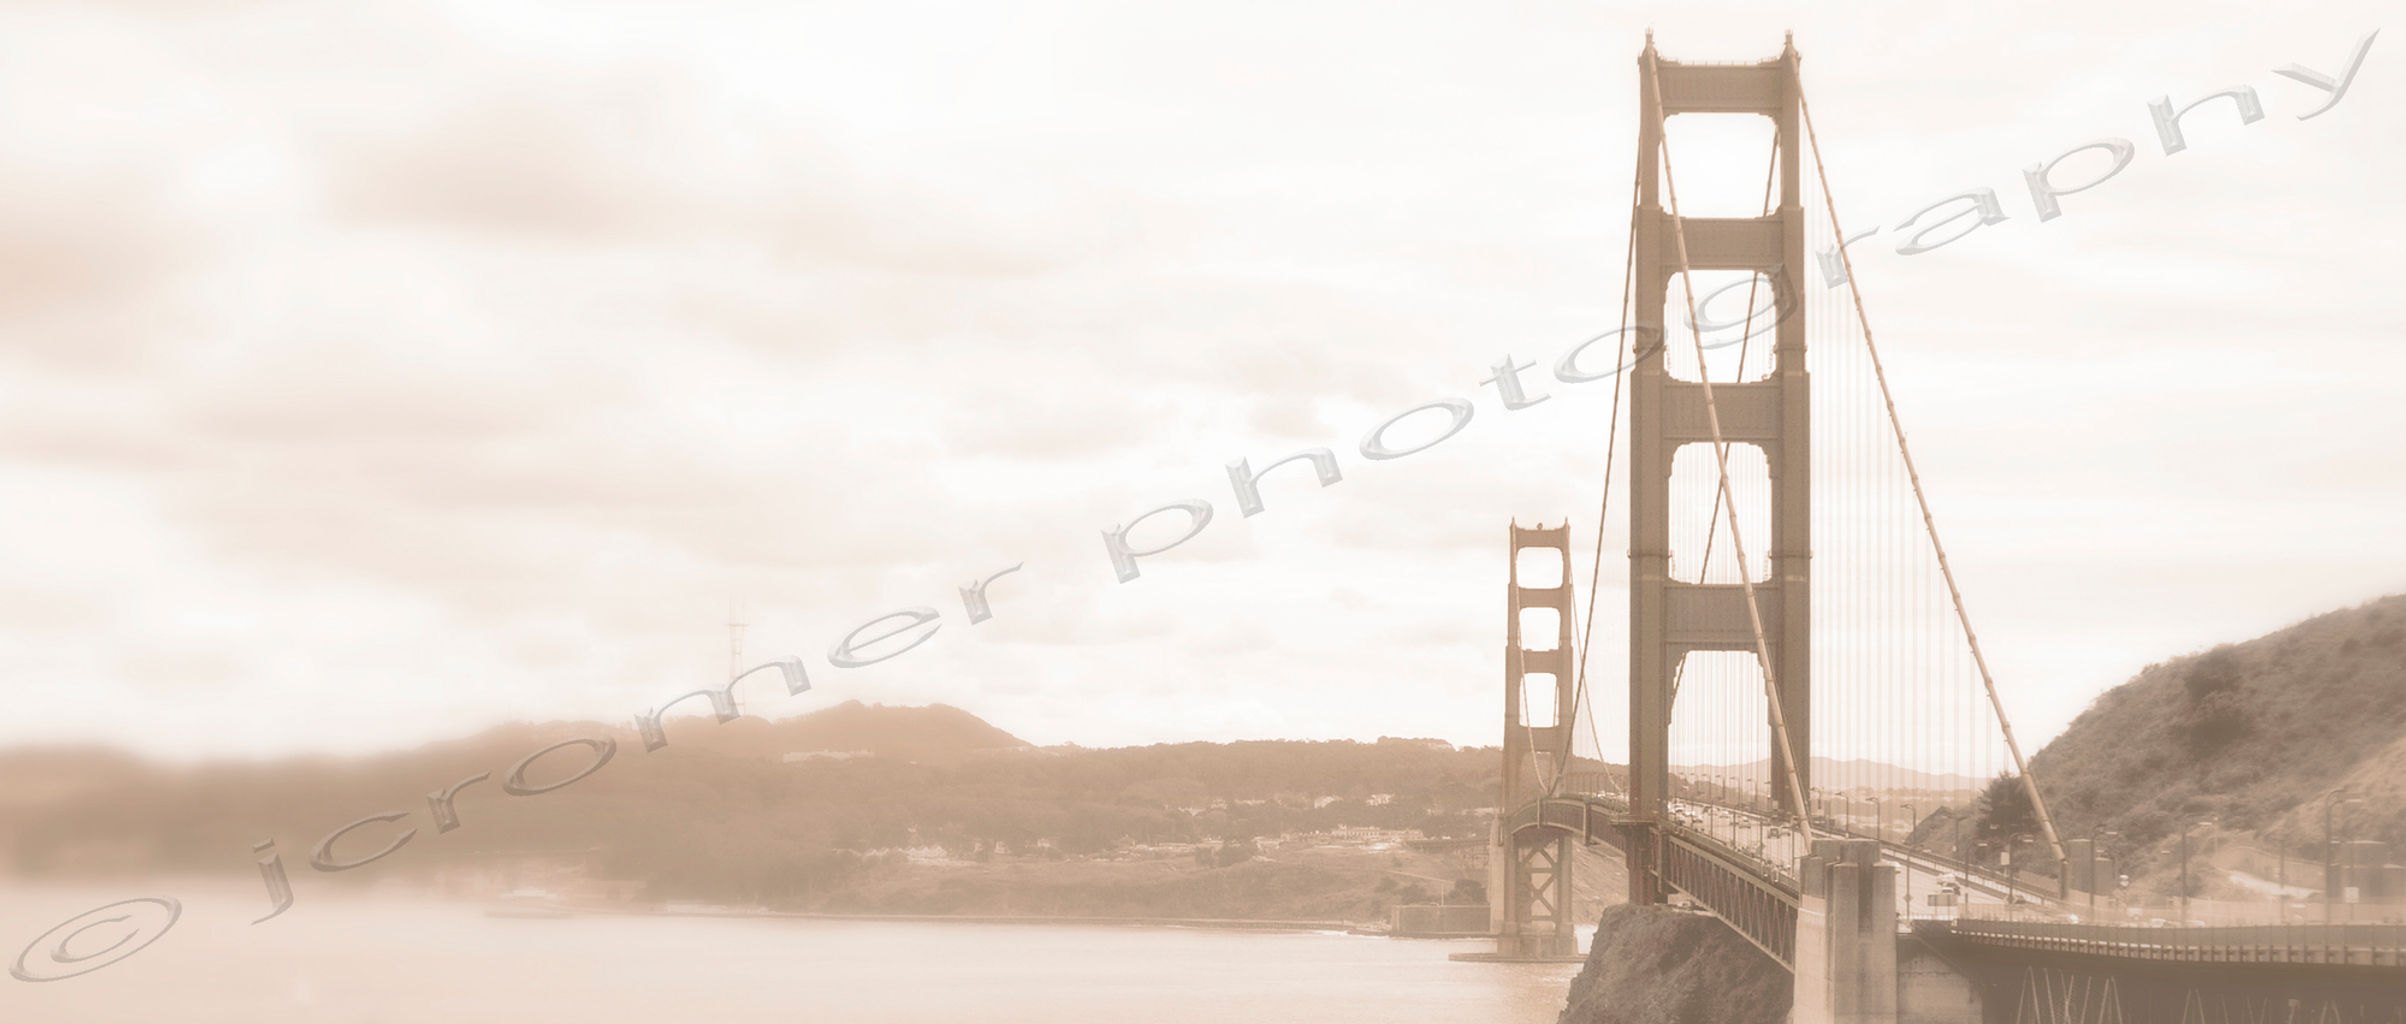 Golden Gate Faded - March 2012